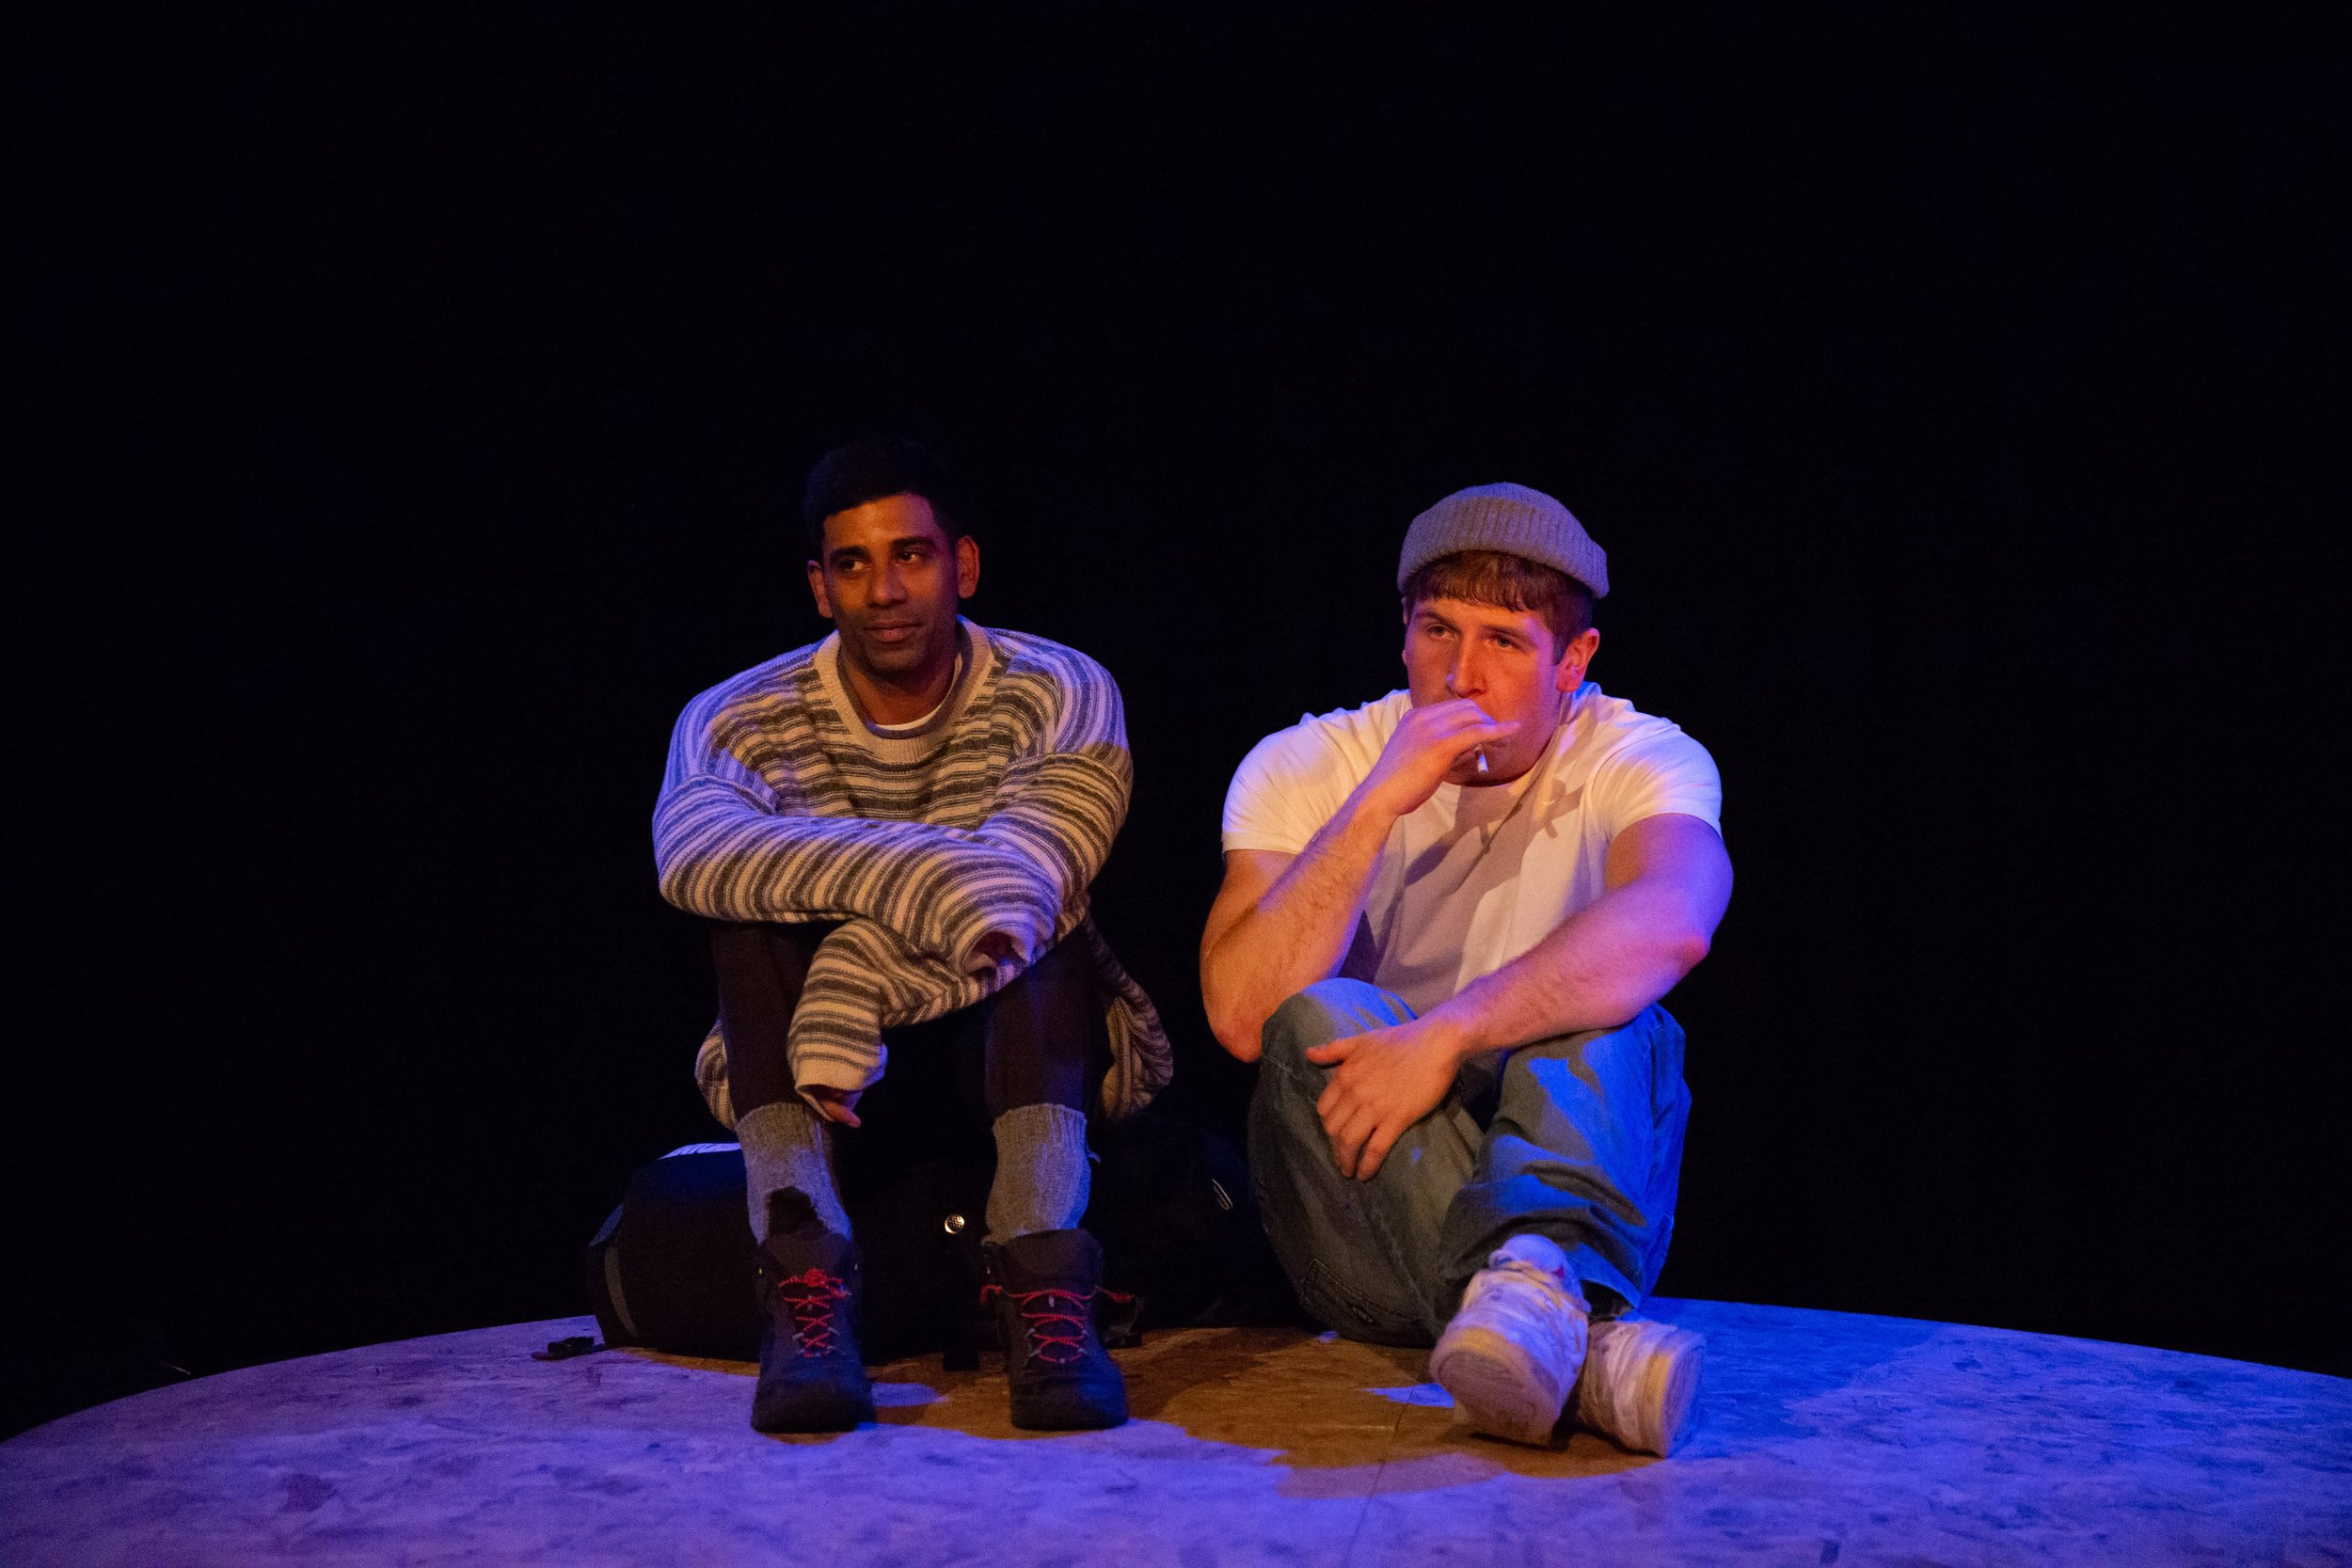 Darren Kuppan and Kyle Rowe in  Under Three Moons  - photos by Alex Mead, Decoy Media